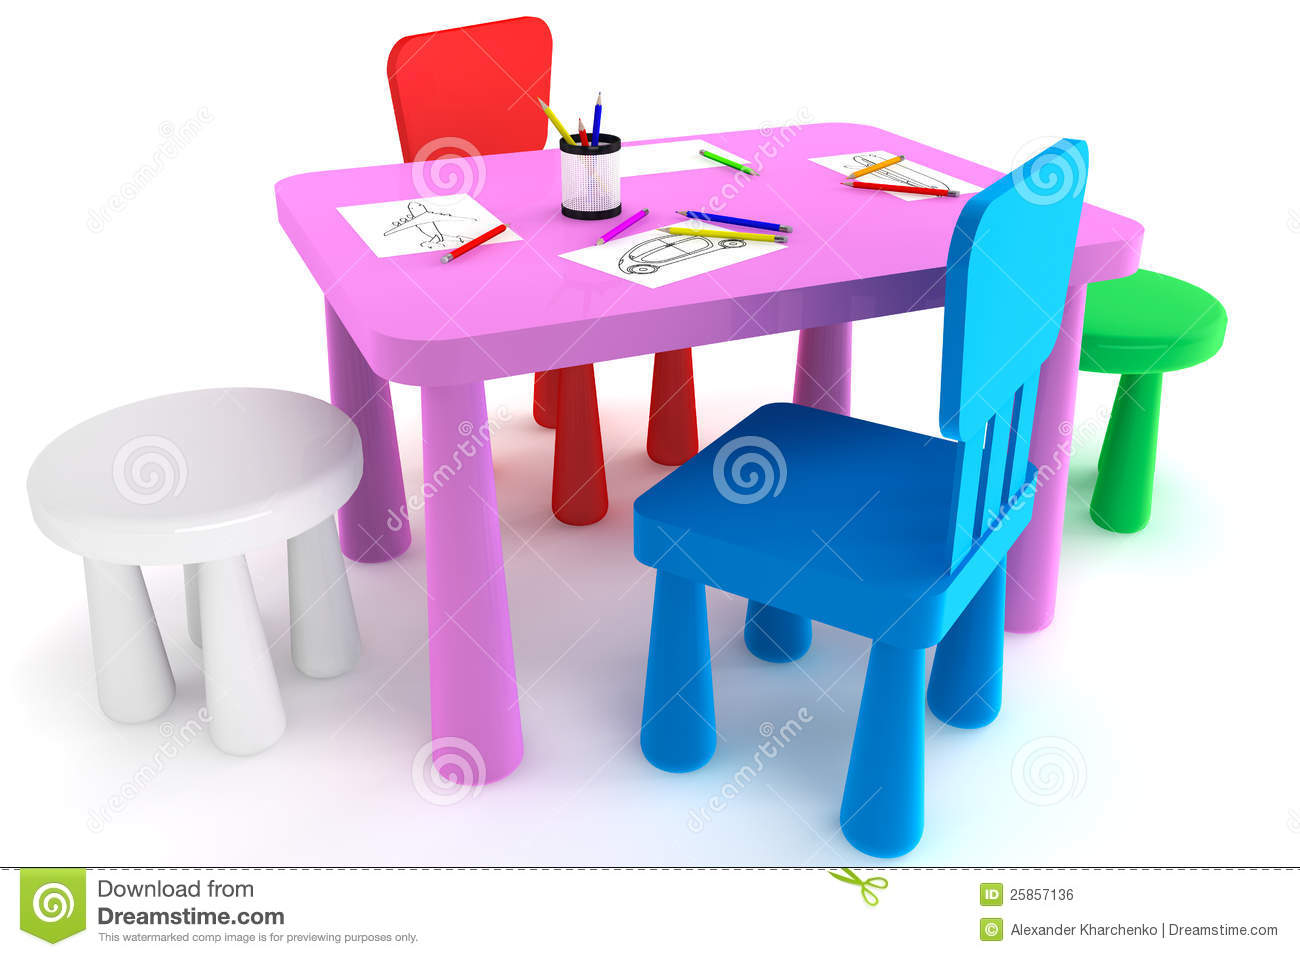 Kids Plastic Table And Chairs Colorful Plastic Kid Chairs And Table Royalty Free Stock